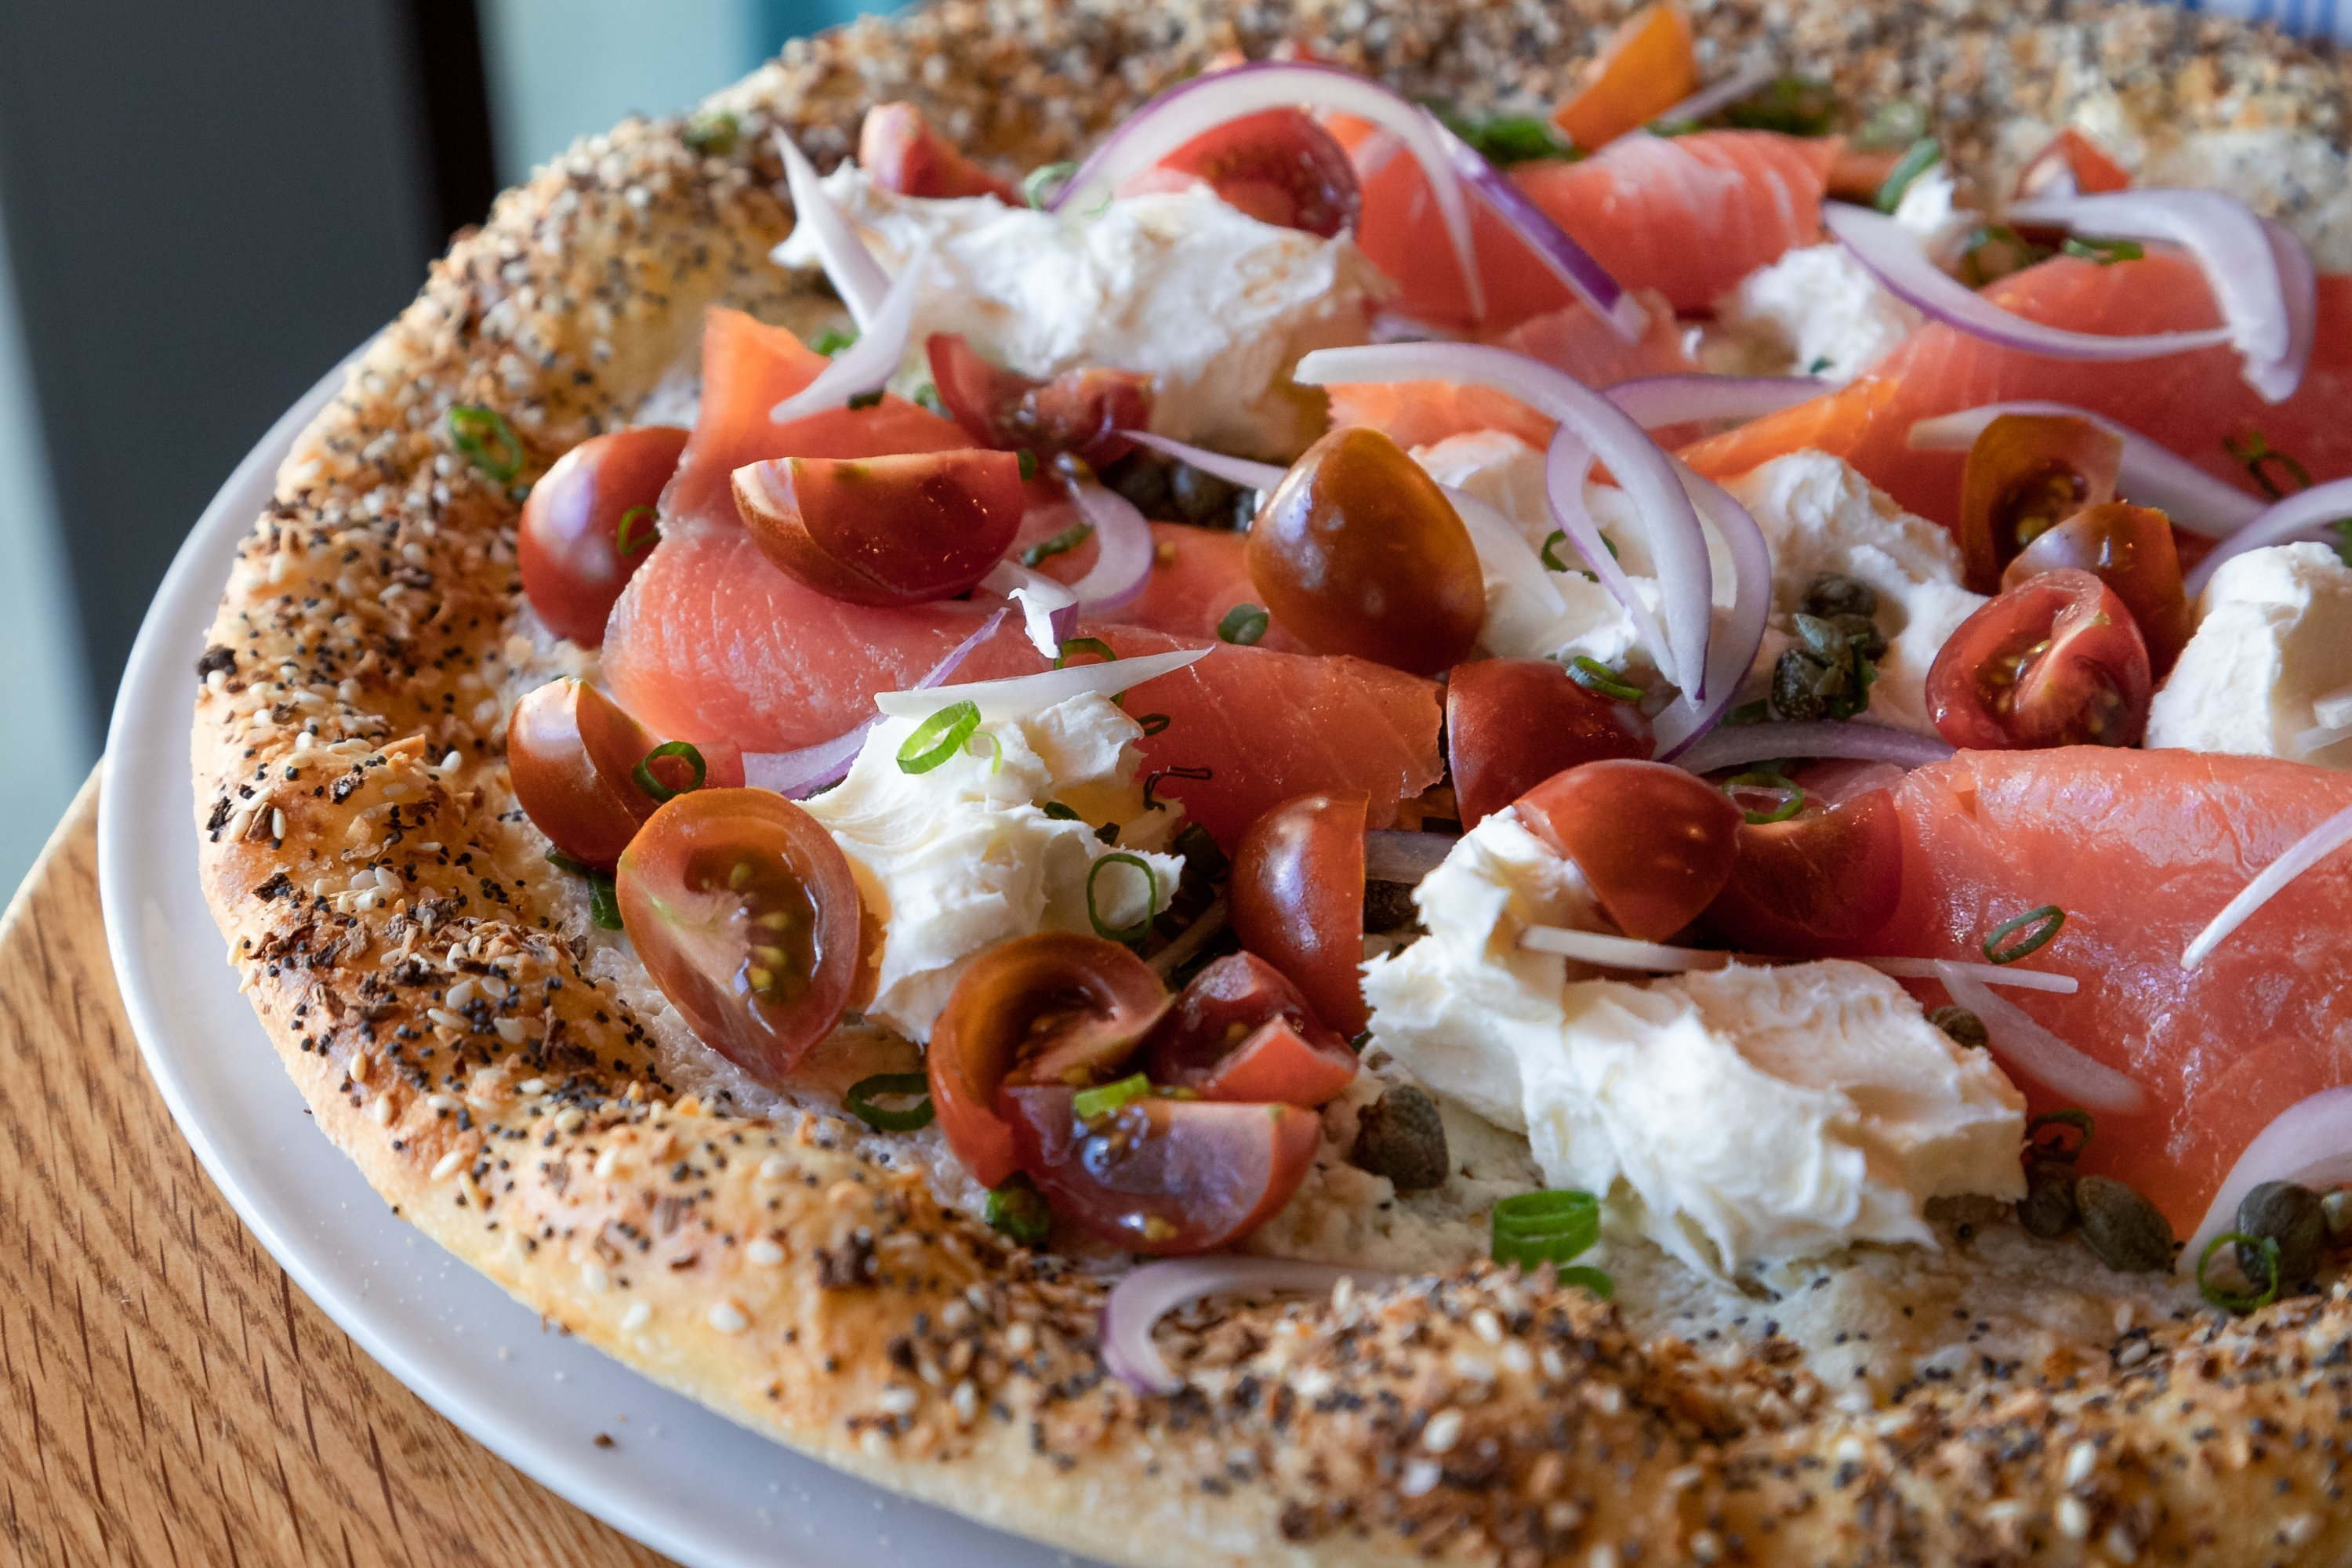 Special seasoning and smoked salmon are the toppings of choice on Alta Strada Mosaic's everything bagel pizza. Photograph courtesy by Clark Douglas.